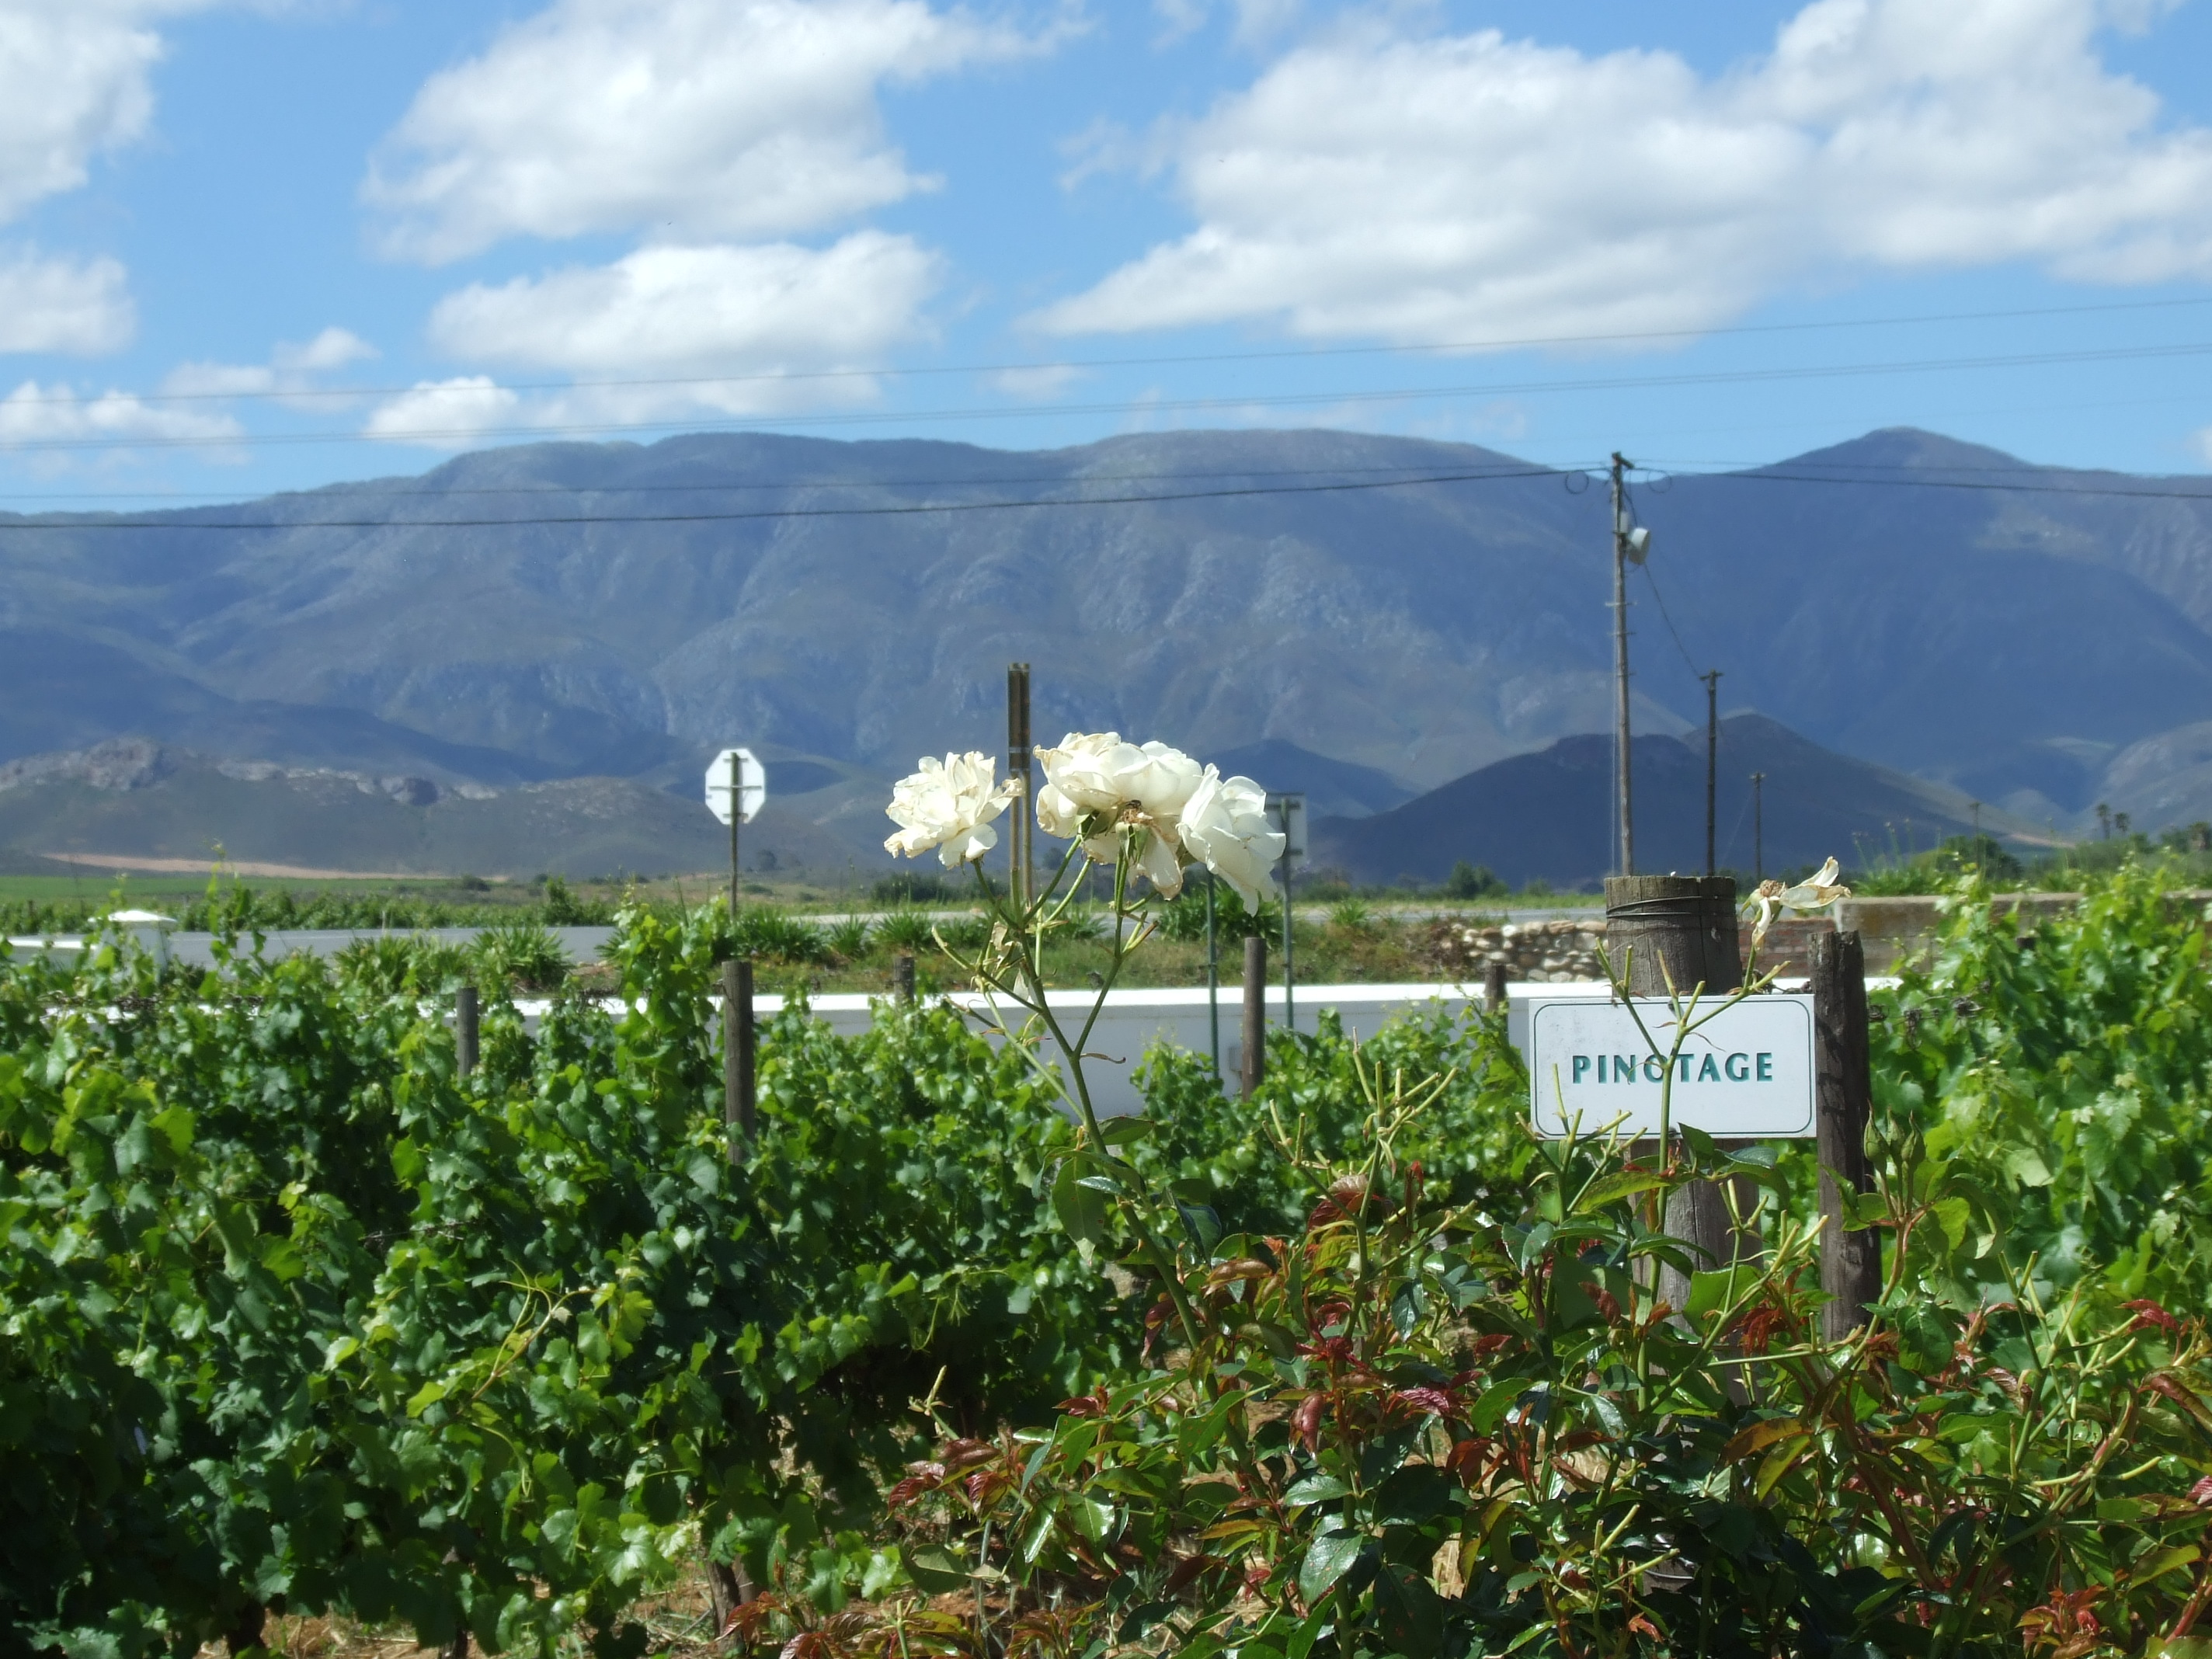 Wine Estate with great Pinotage grapes to eventually taste